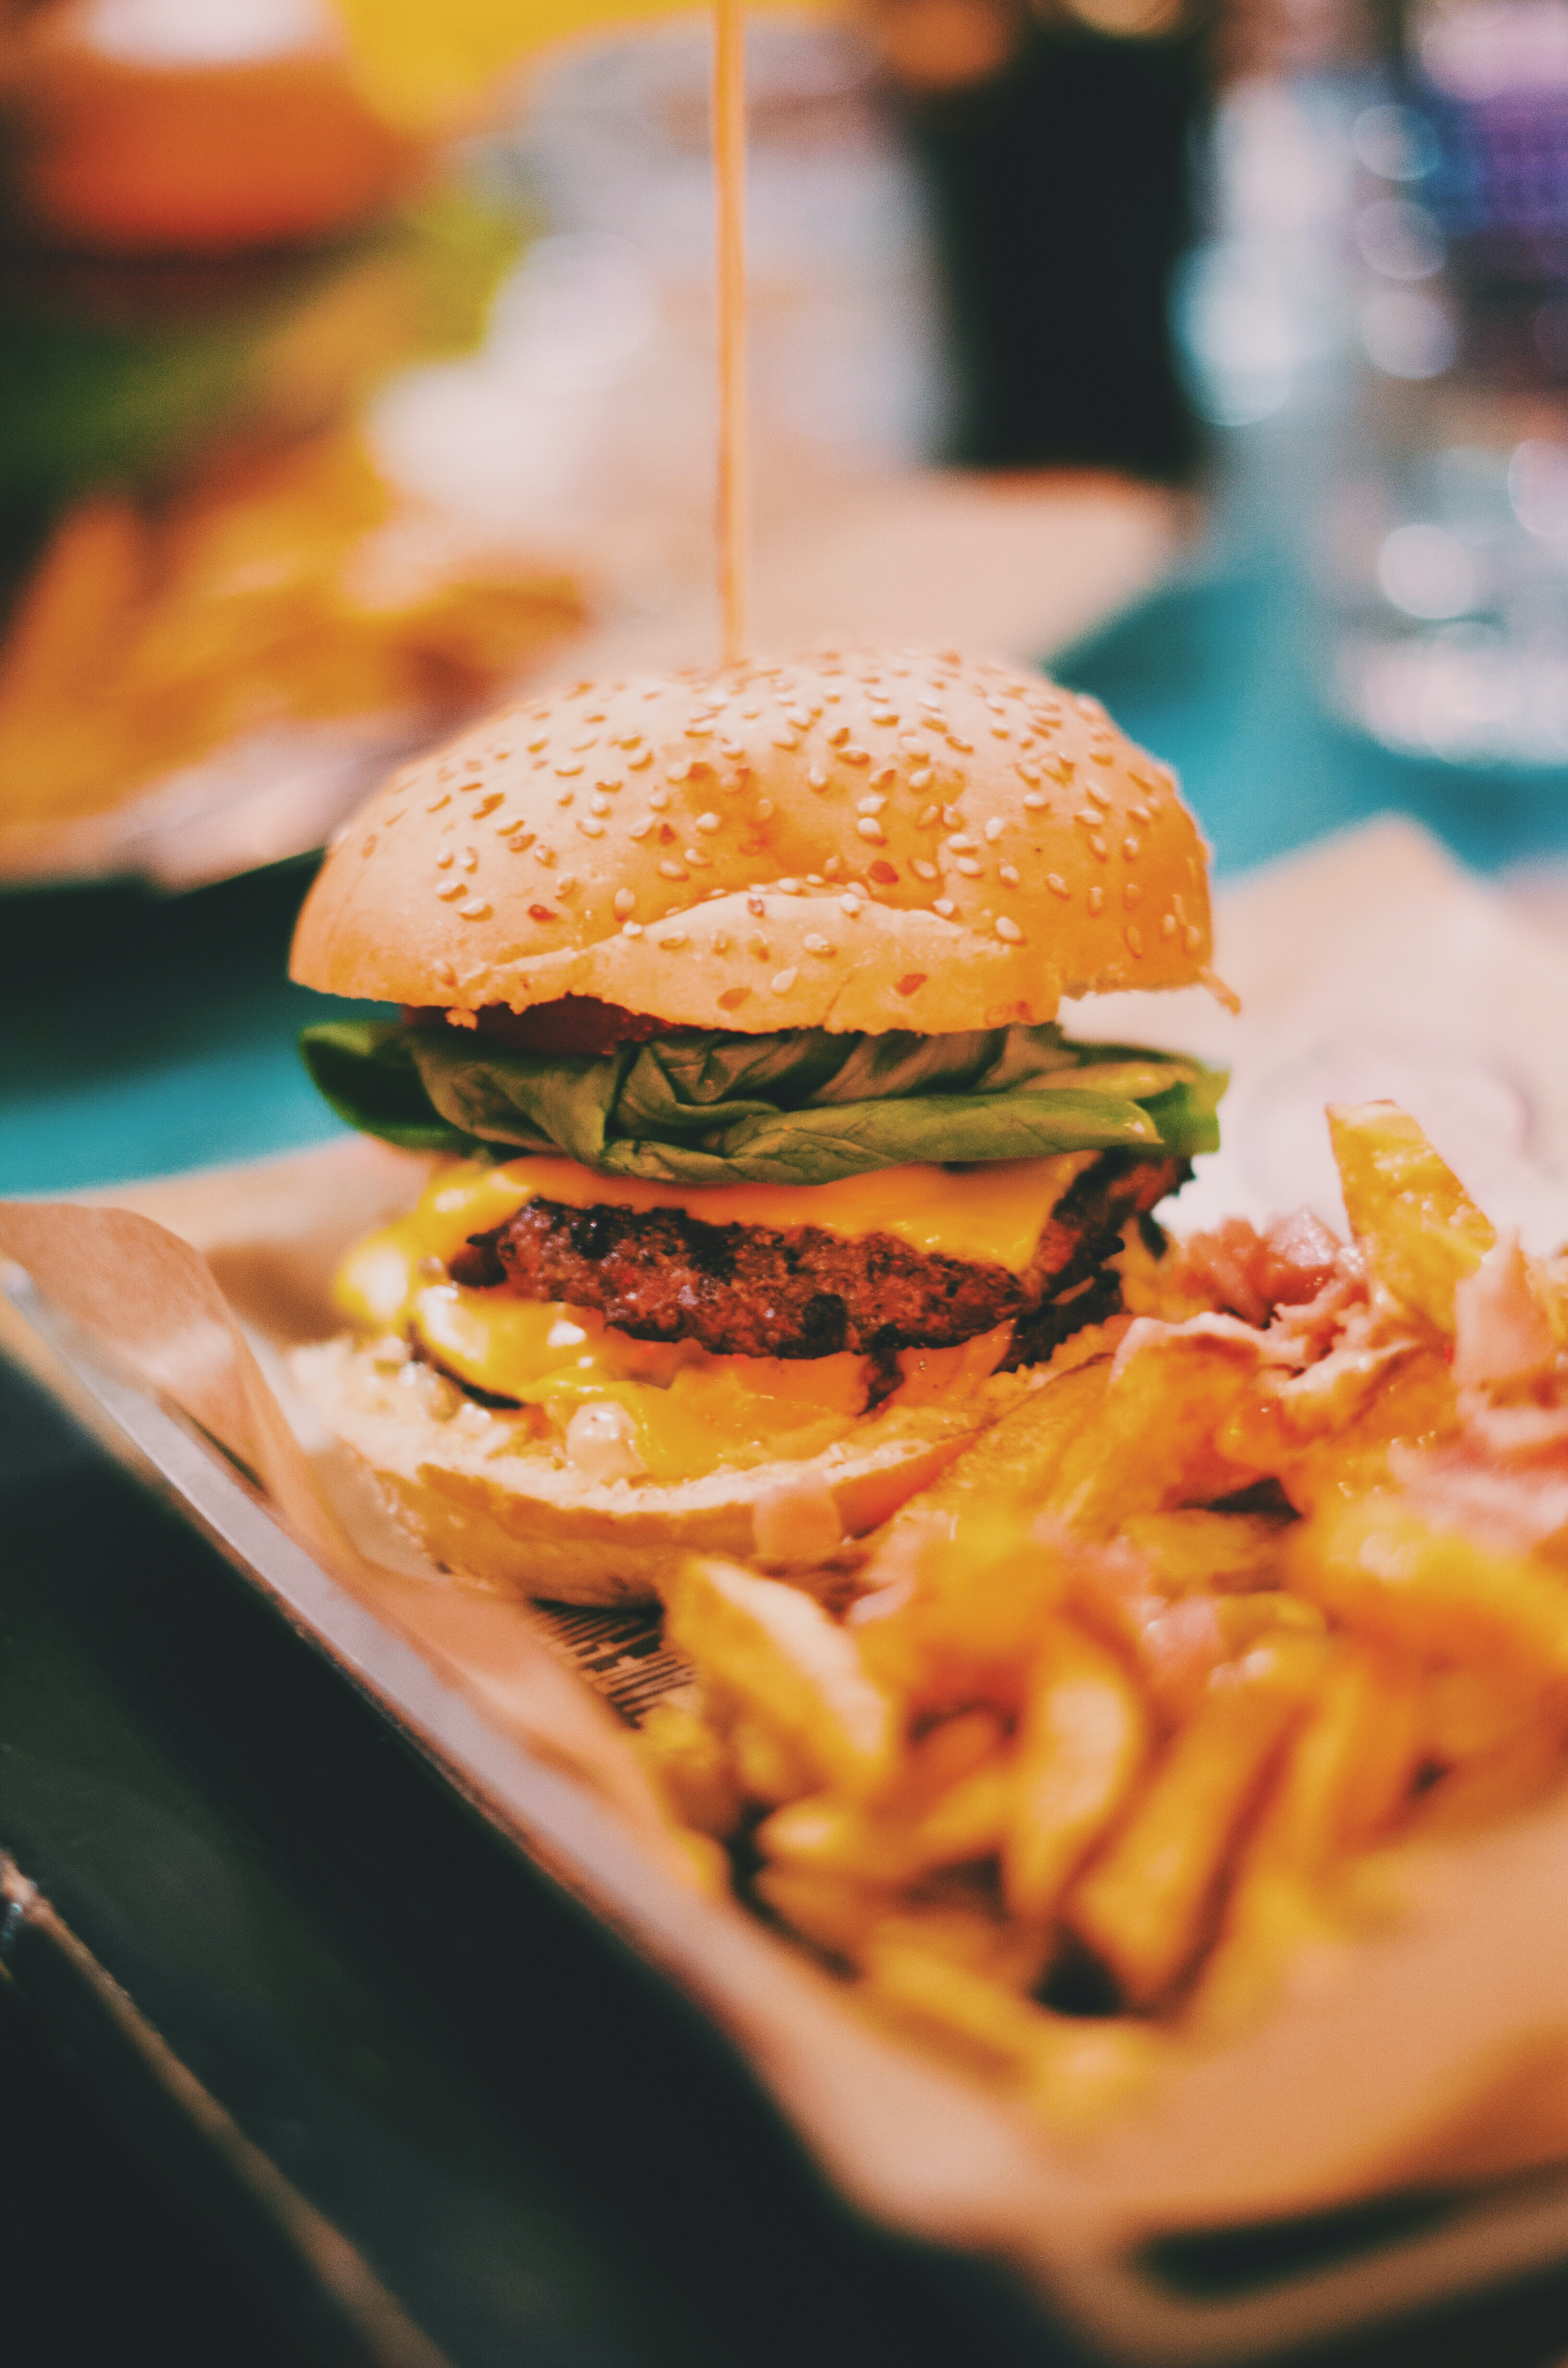 food photography of burger and fries